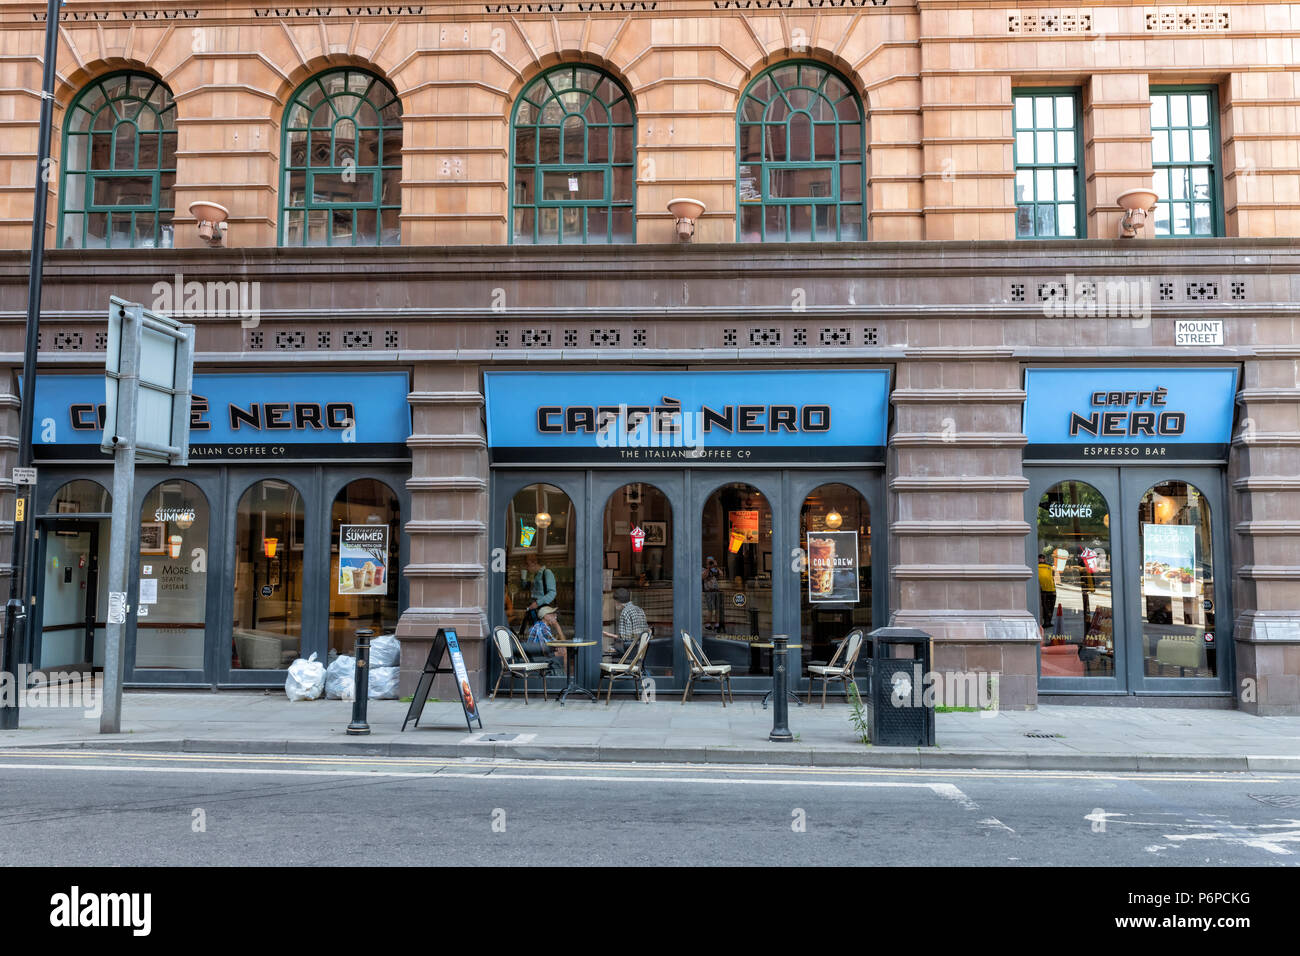 A branch of Caffe Nero coffee shop in Mount Street, Manchester, UK - Stock Image